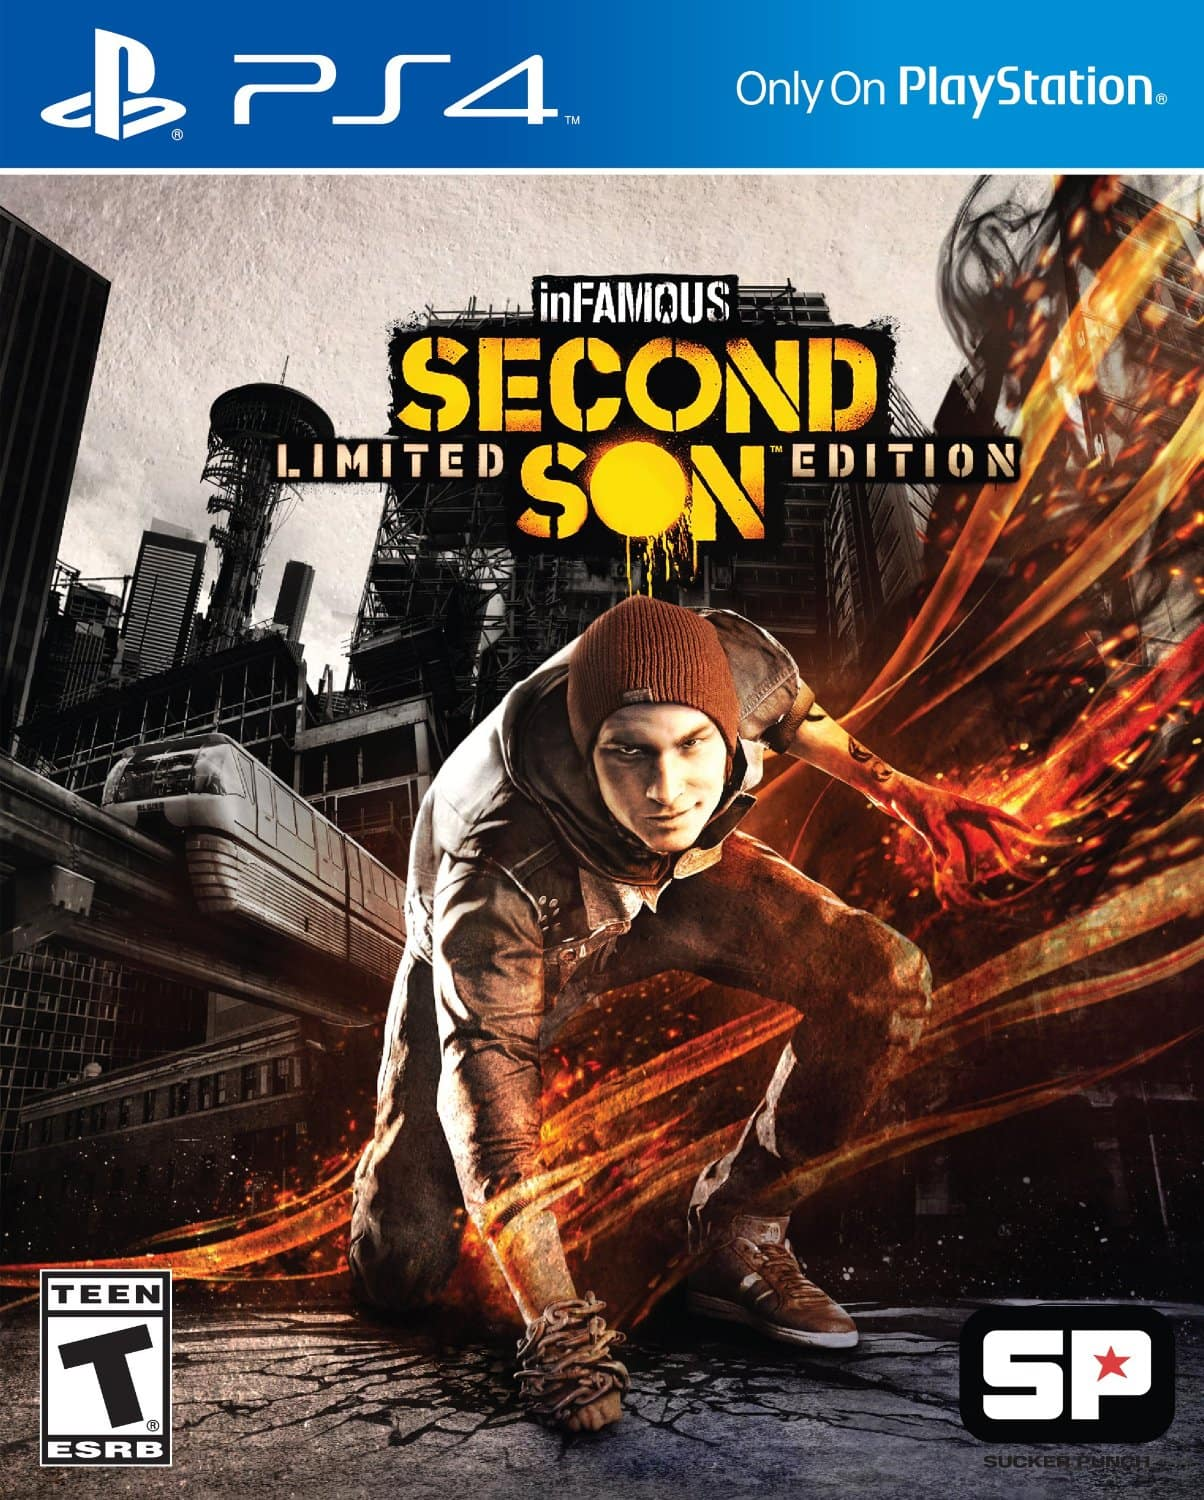 Best Buy Selling Middle-earth: Shadow of Mordor at $49.99, Infamous Second Son at $29.99, Other